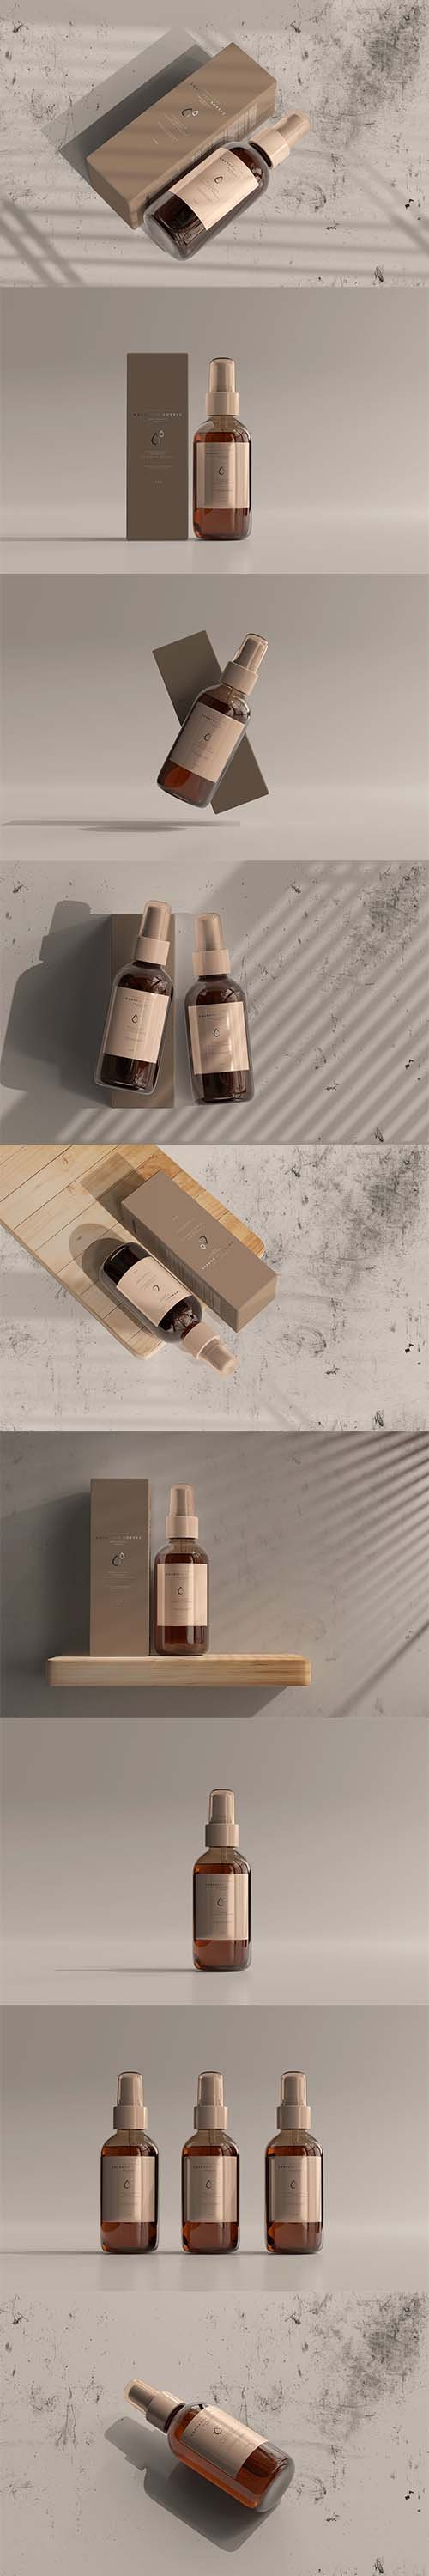 Amber Cosmetic Spray Bottle Mockup 5990014